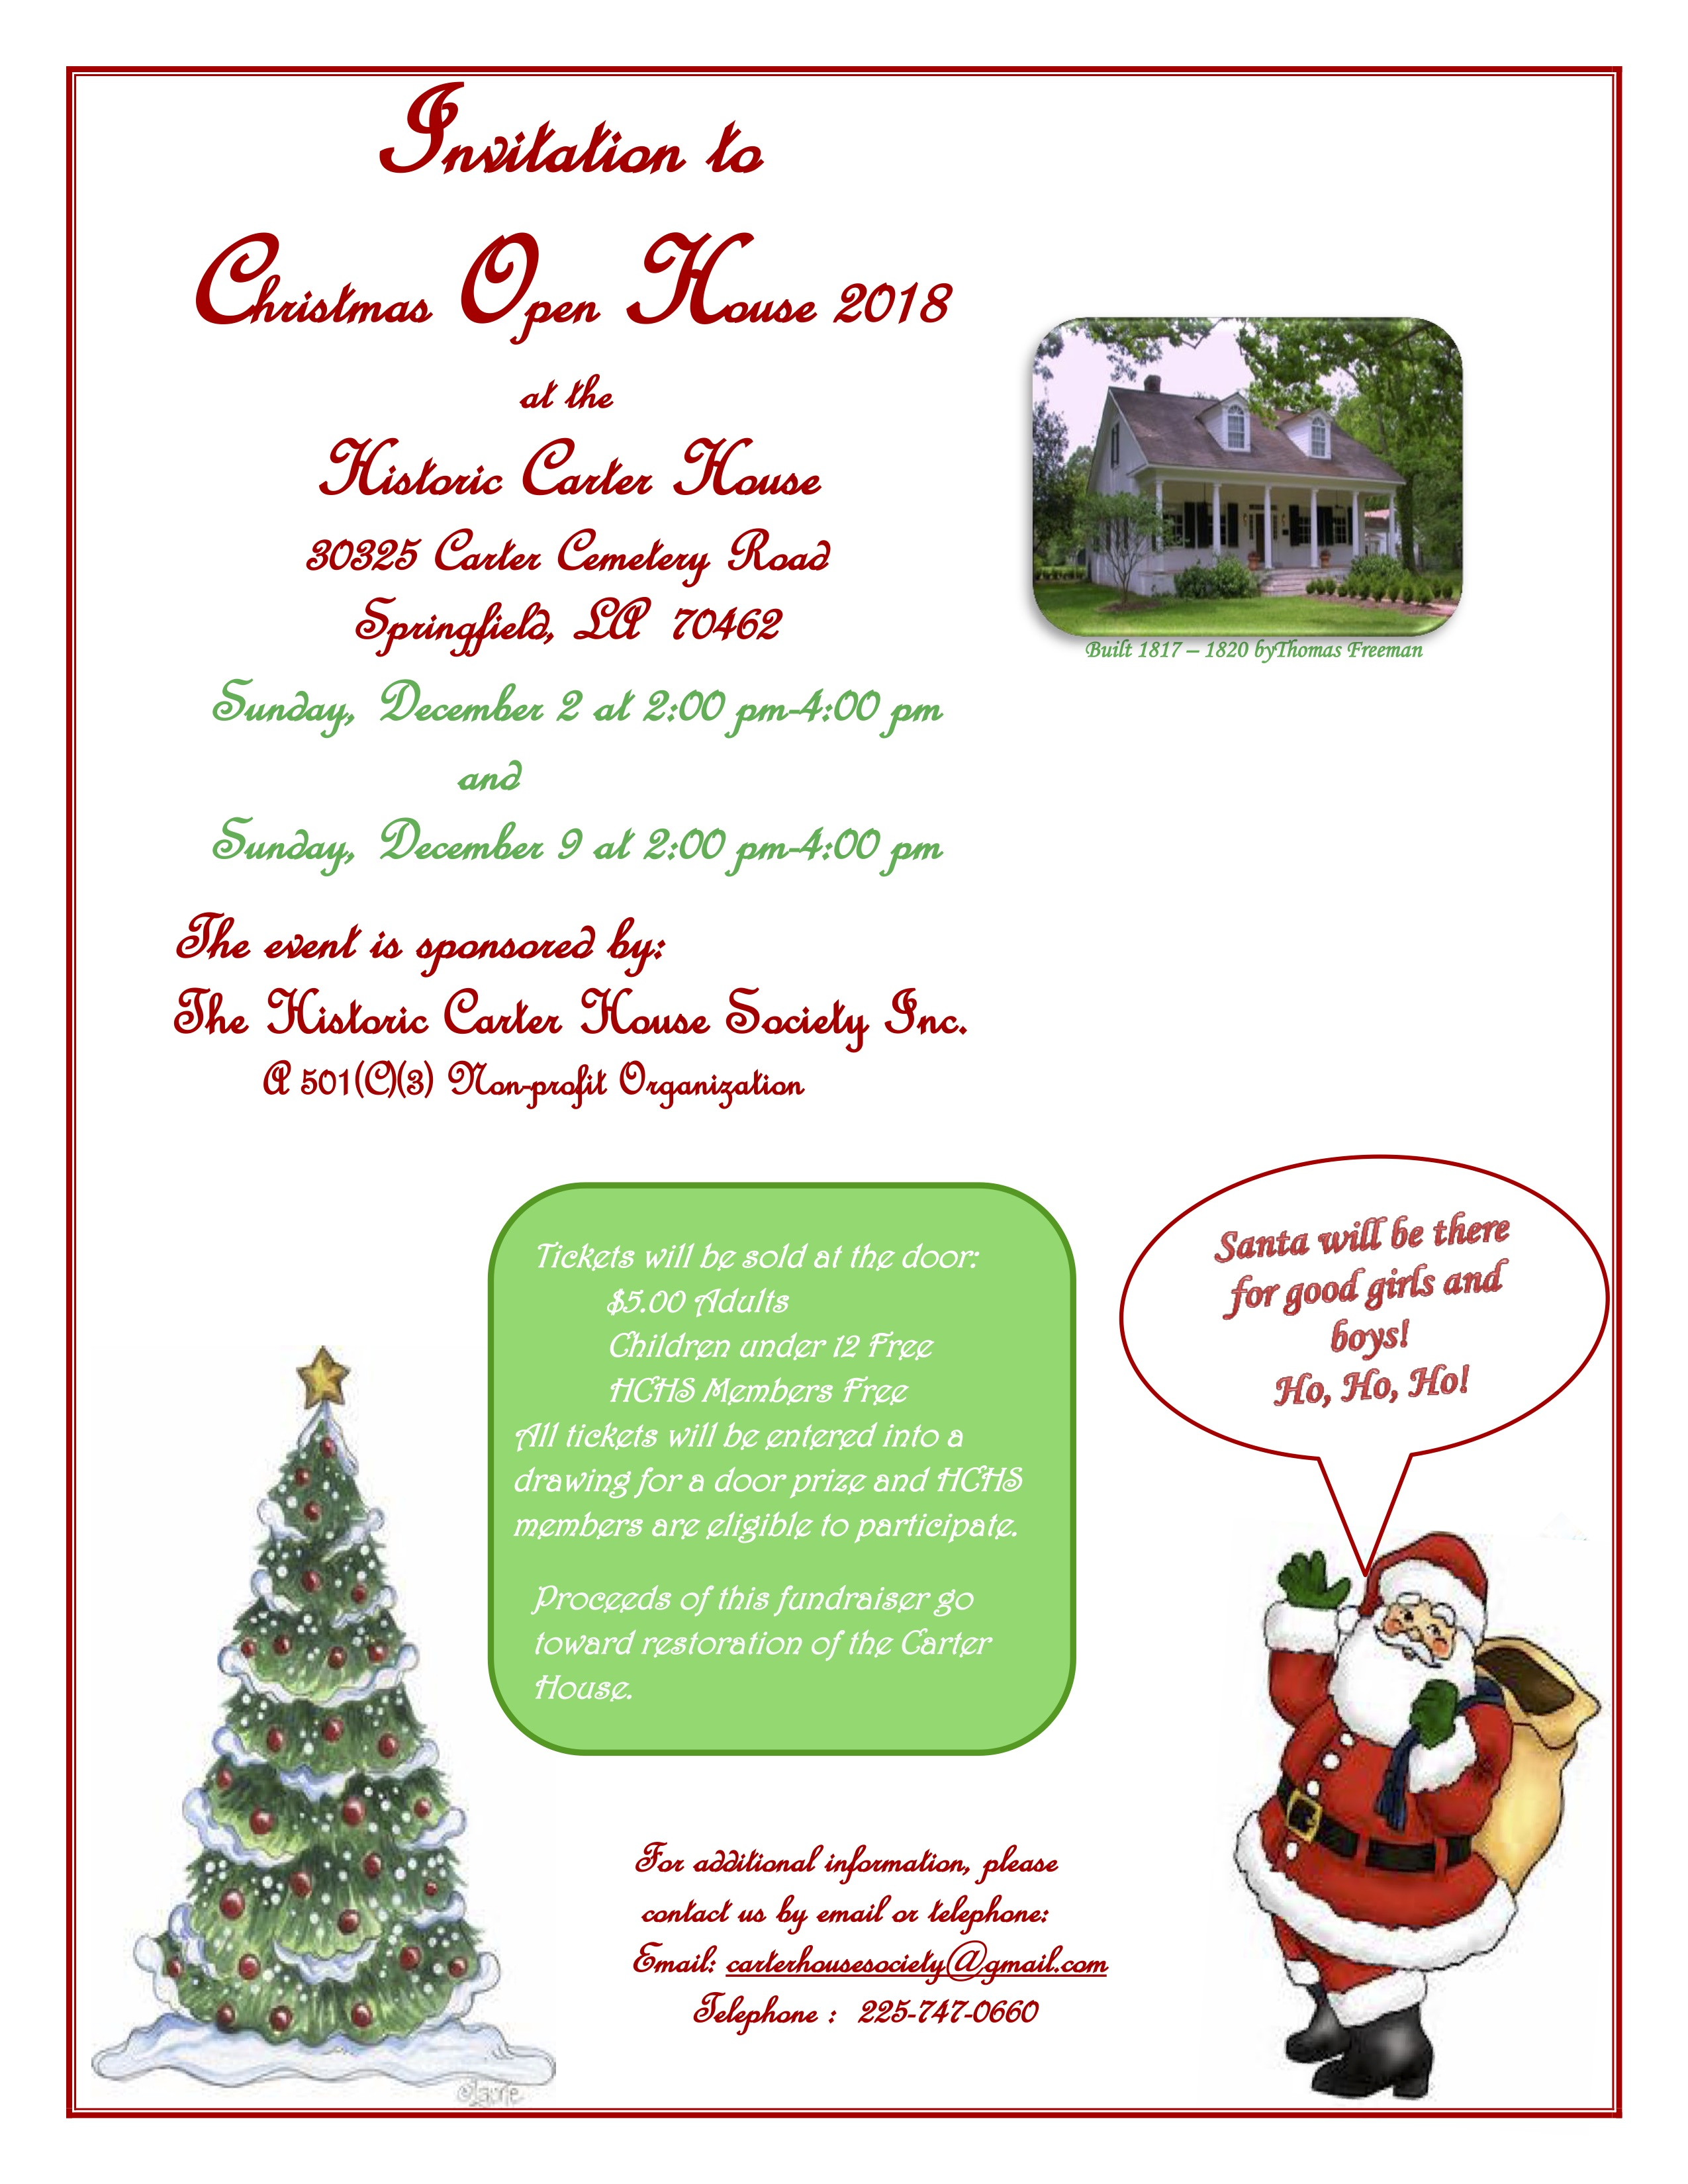 Christmas Open House.Invitation To Christmas Open House Historic Carter House